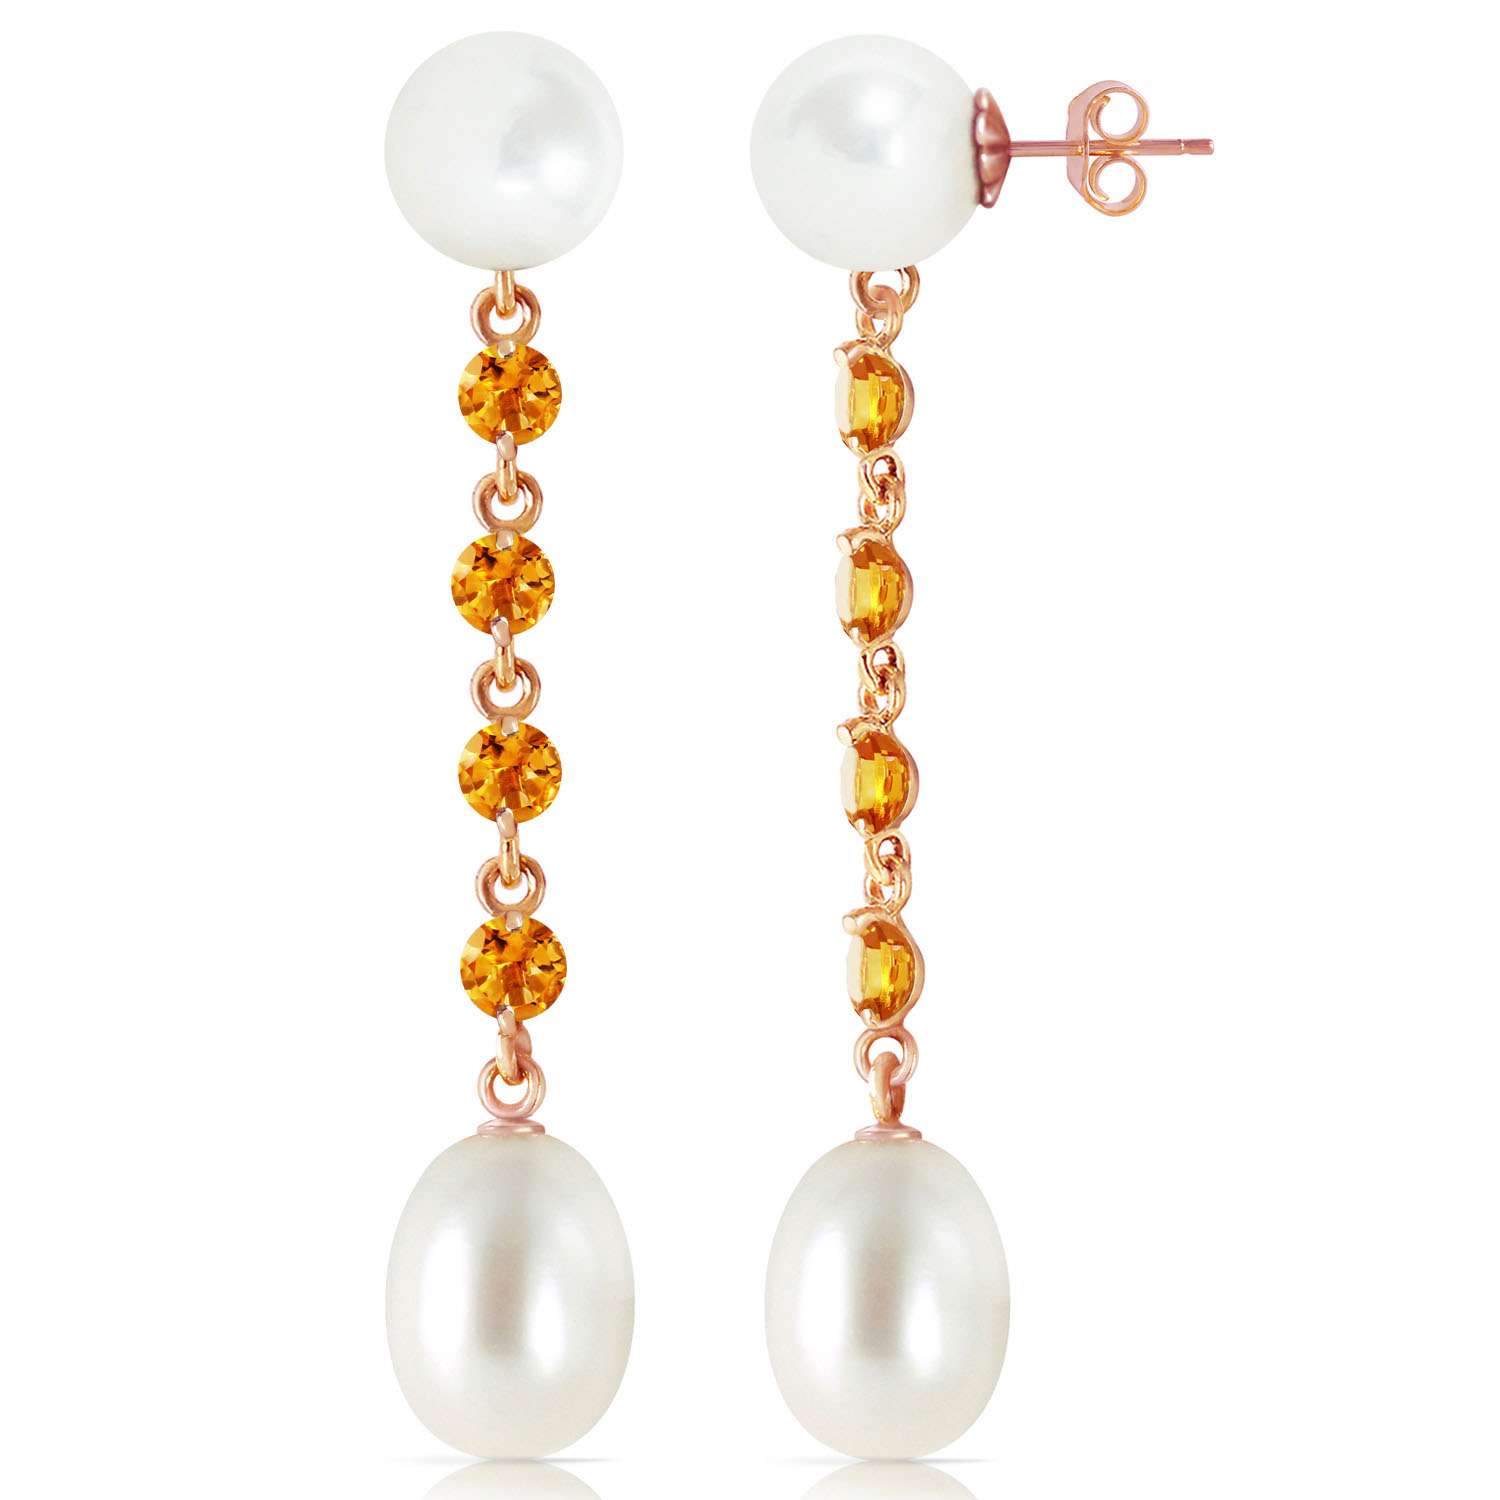 14K Solid Rose Gold Chandelier Earrings with Citrines & pearls